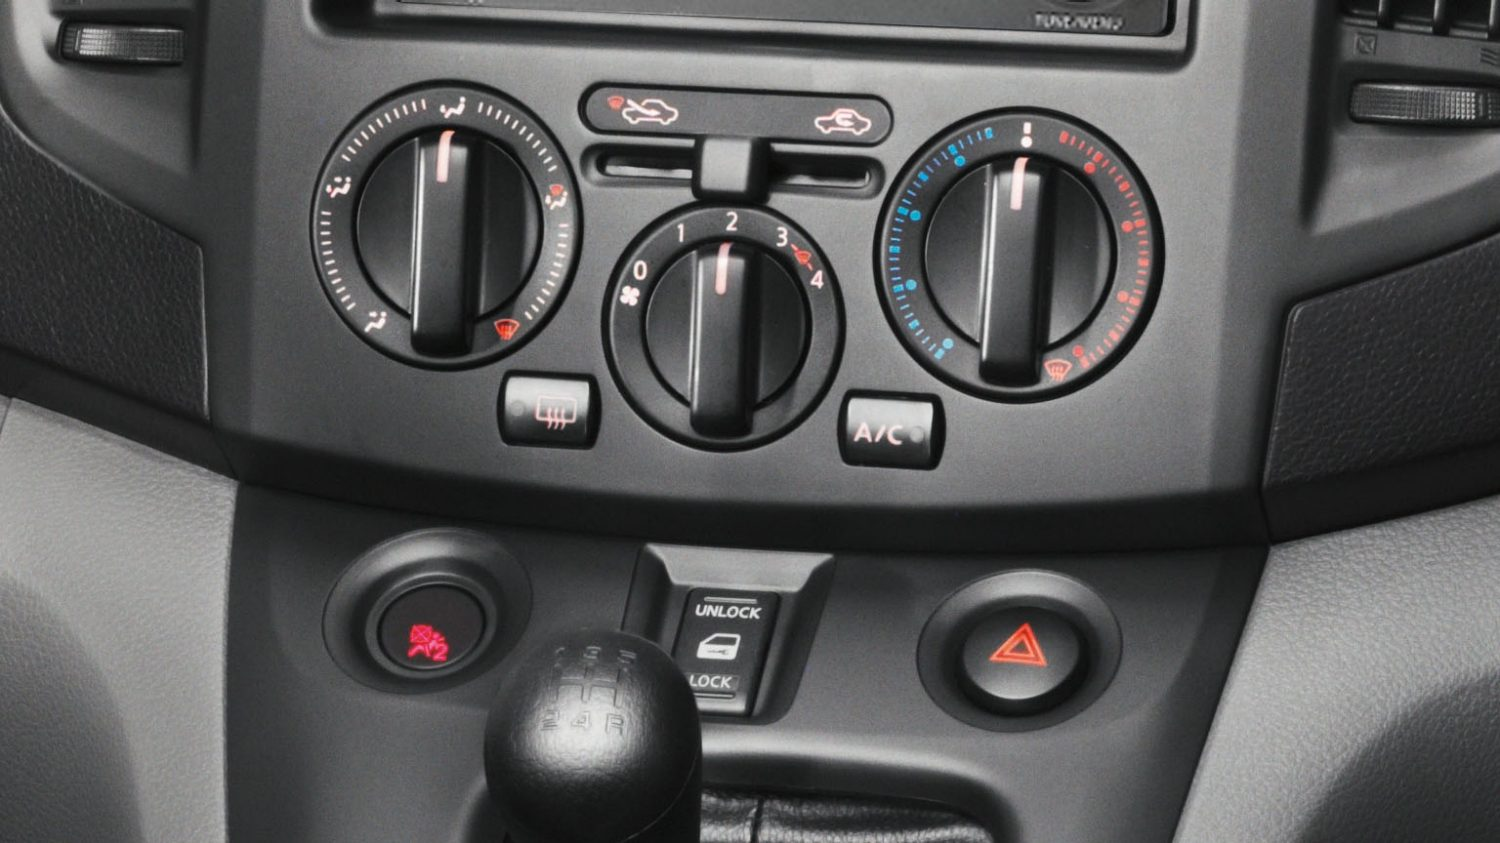 Climate Control Detail